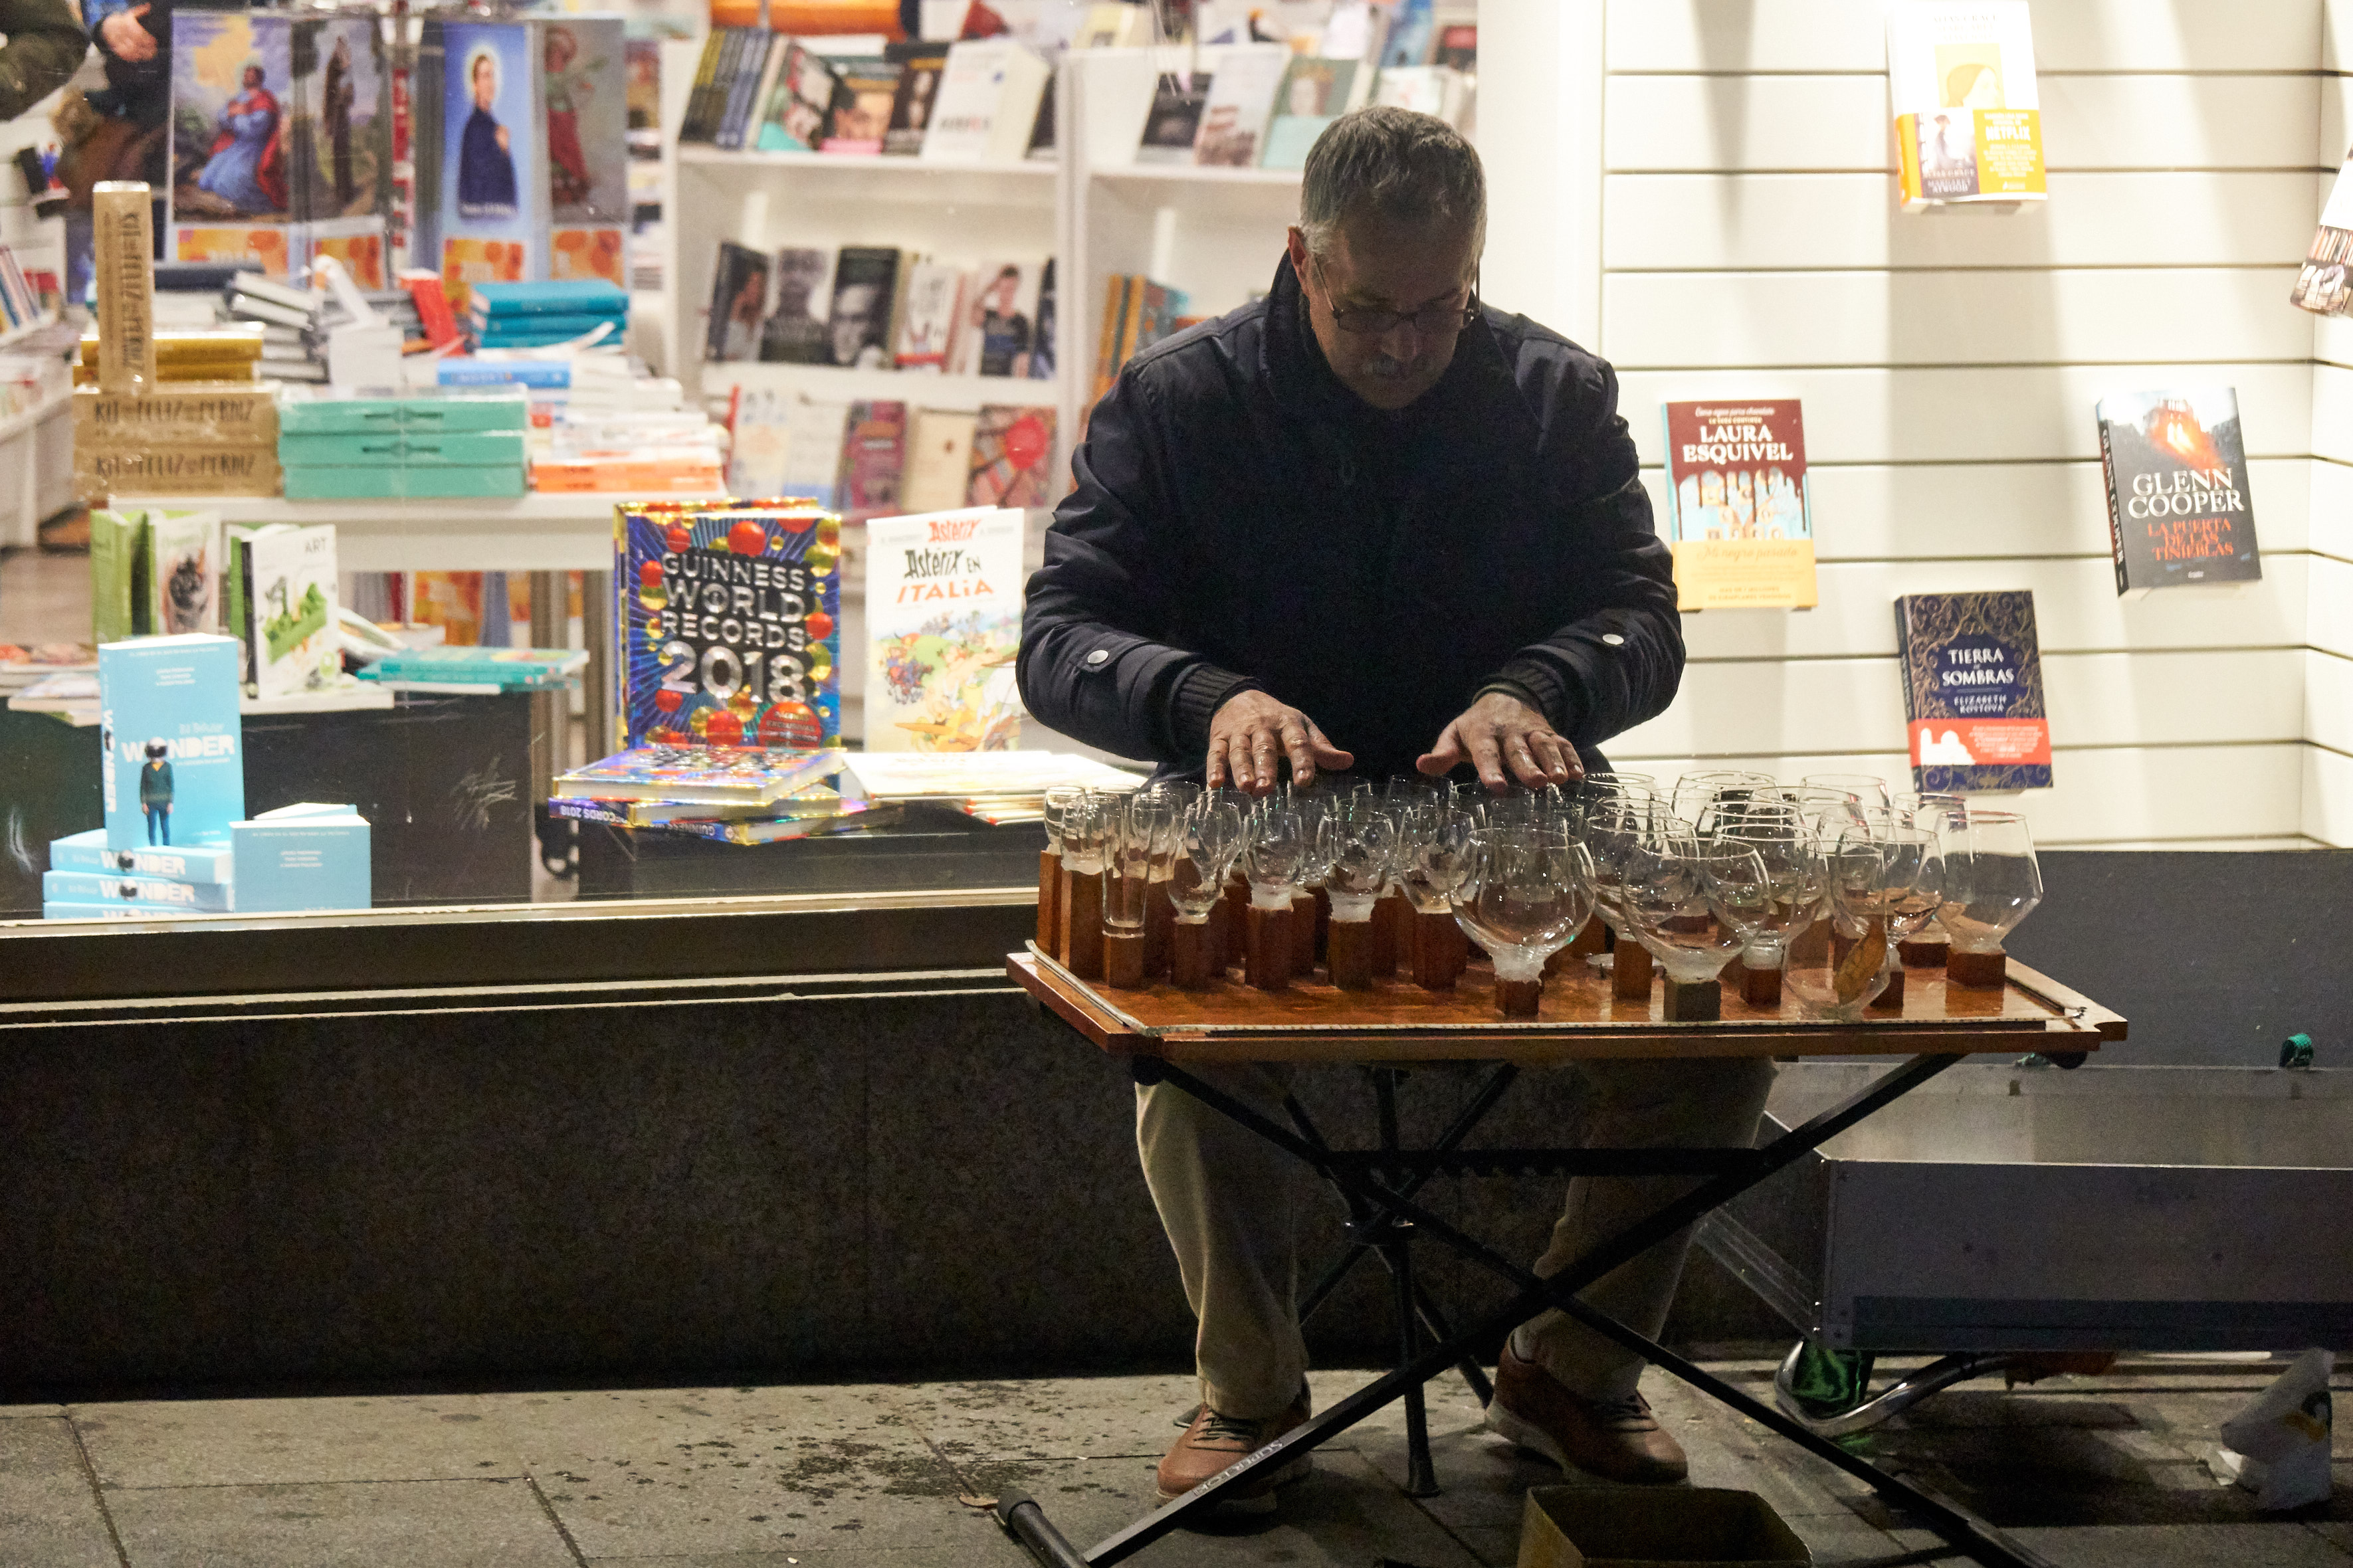 Glass organ player in the night